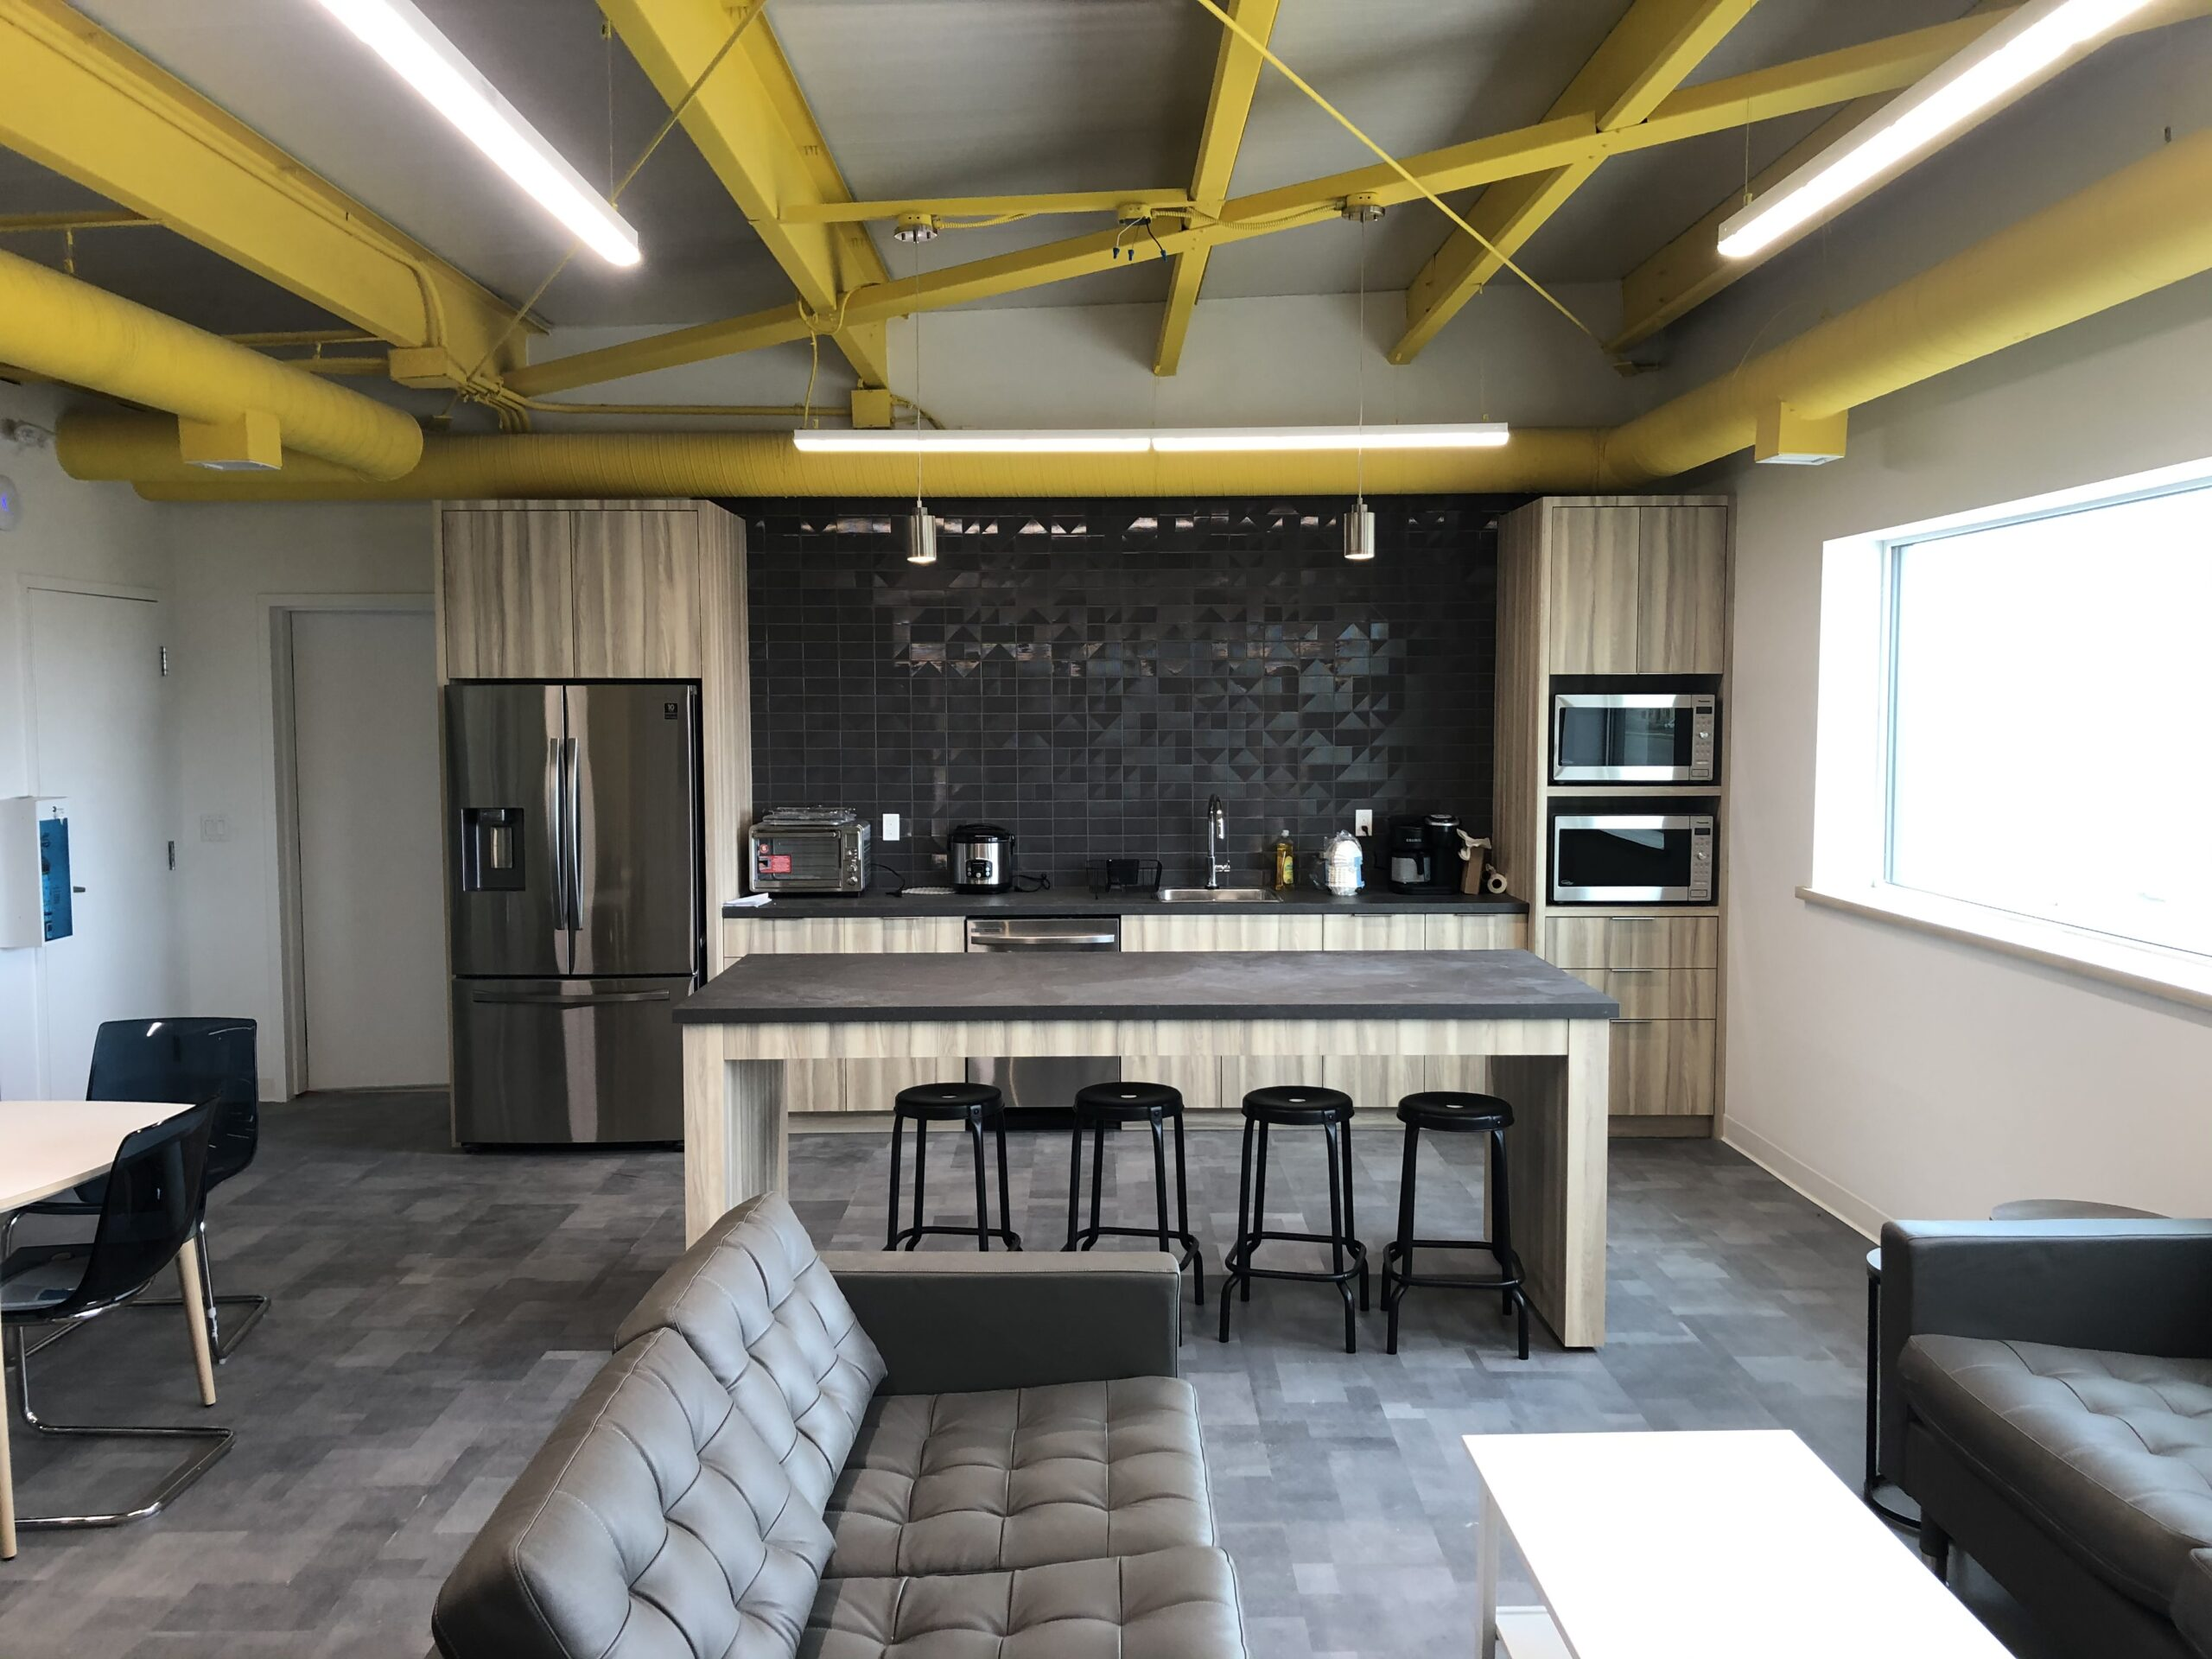 Create Pharmacy - Commercial Kitchen Project